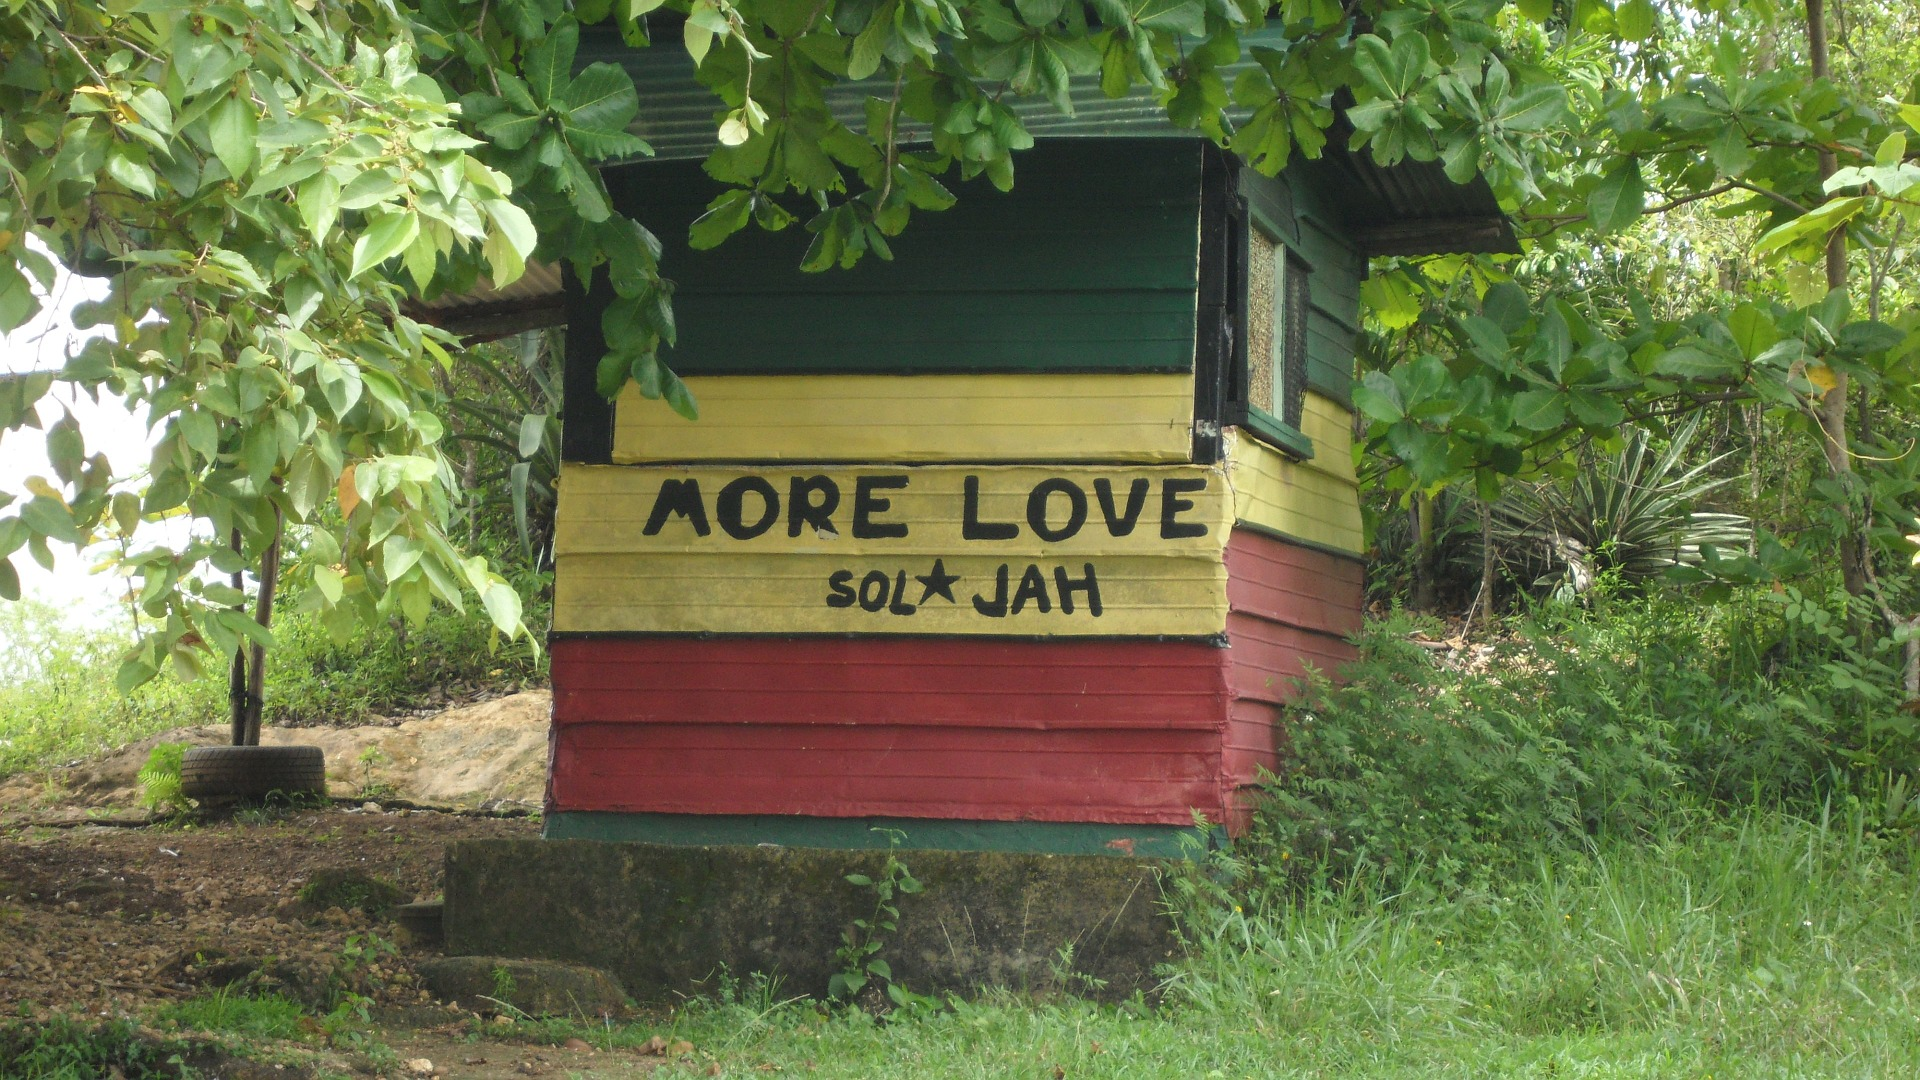 jamaica More Love